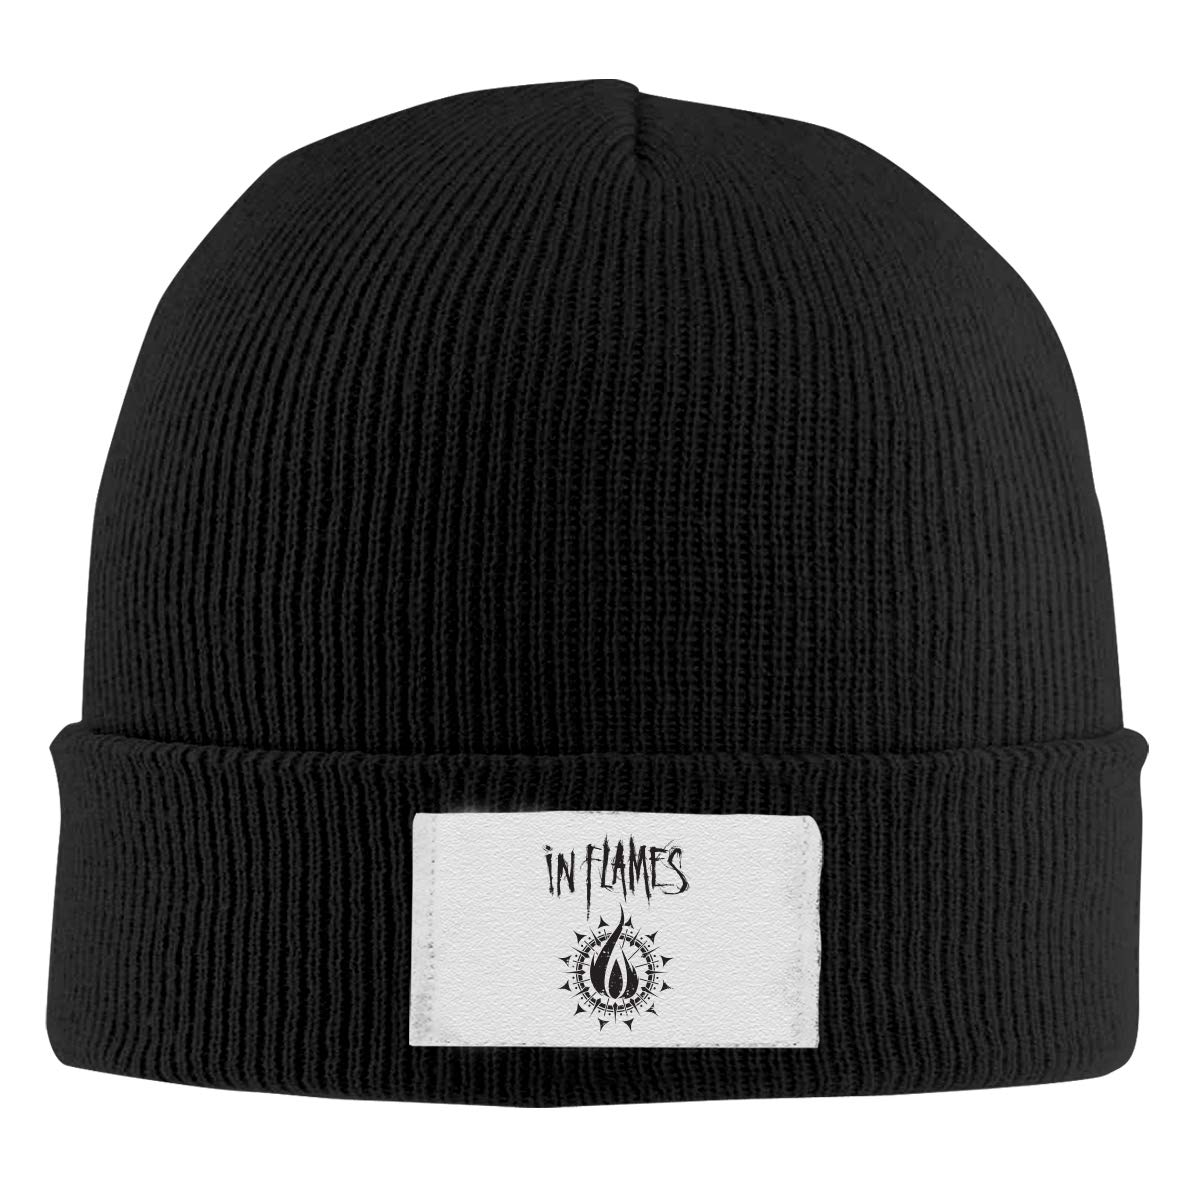 Skull Caps in Flames Winter Warm Knit Hats Stretchy Cuff Beanie Hat Black